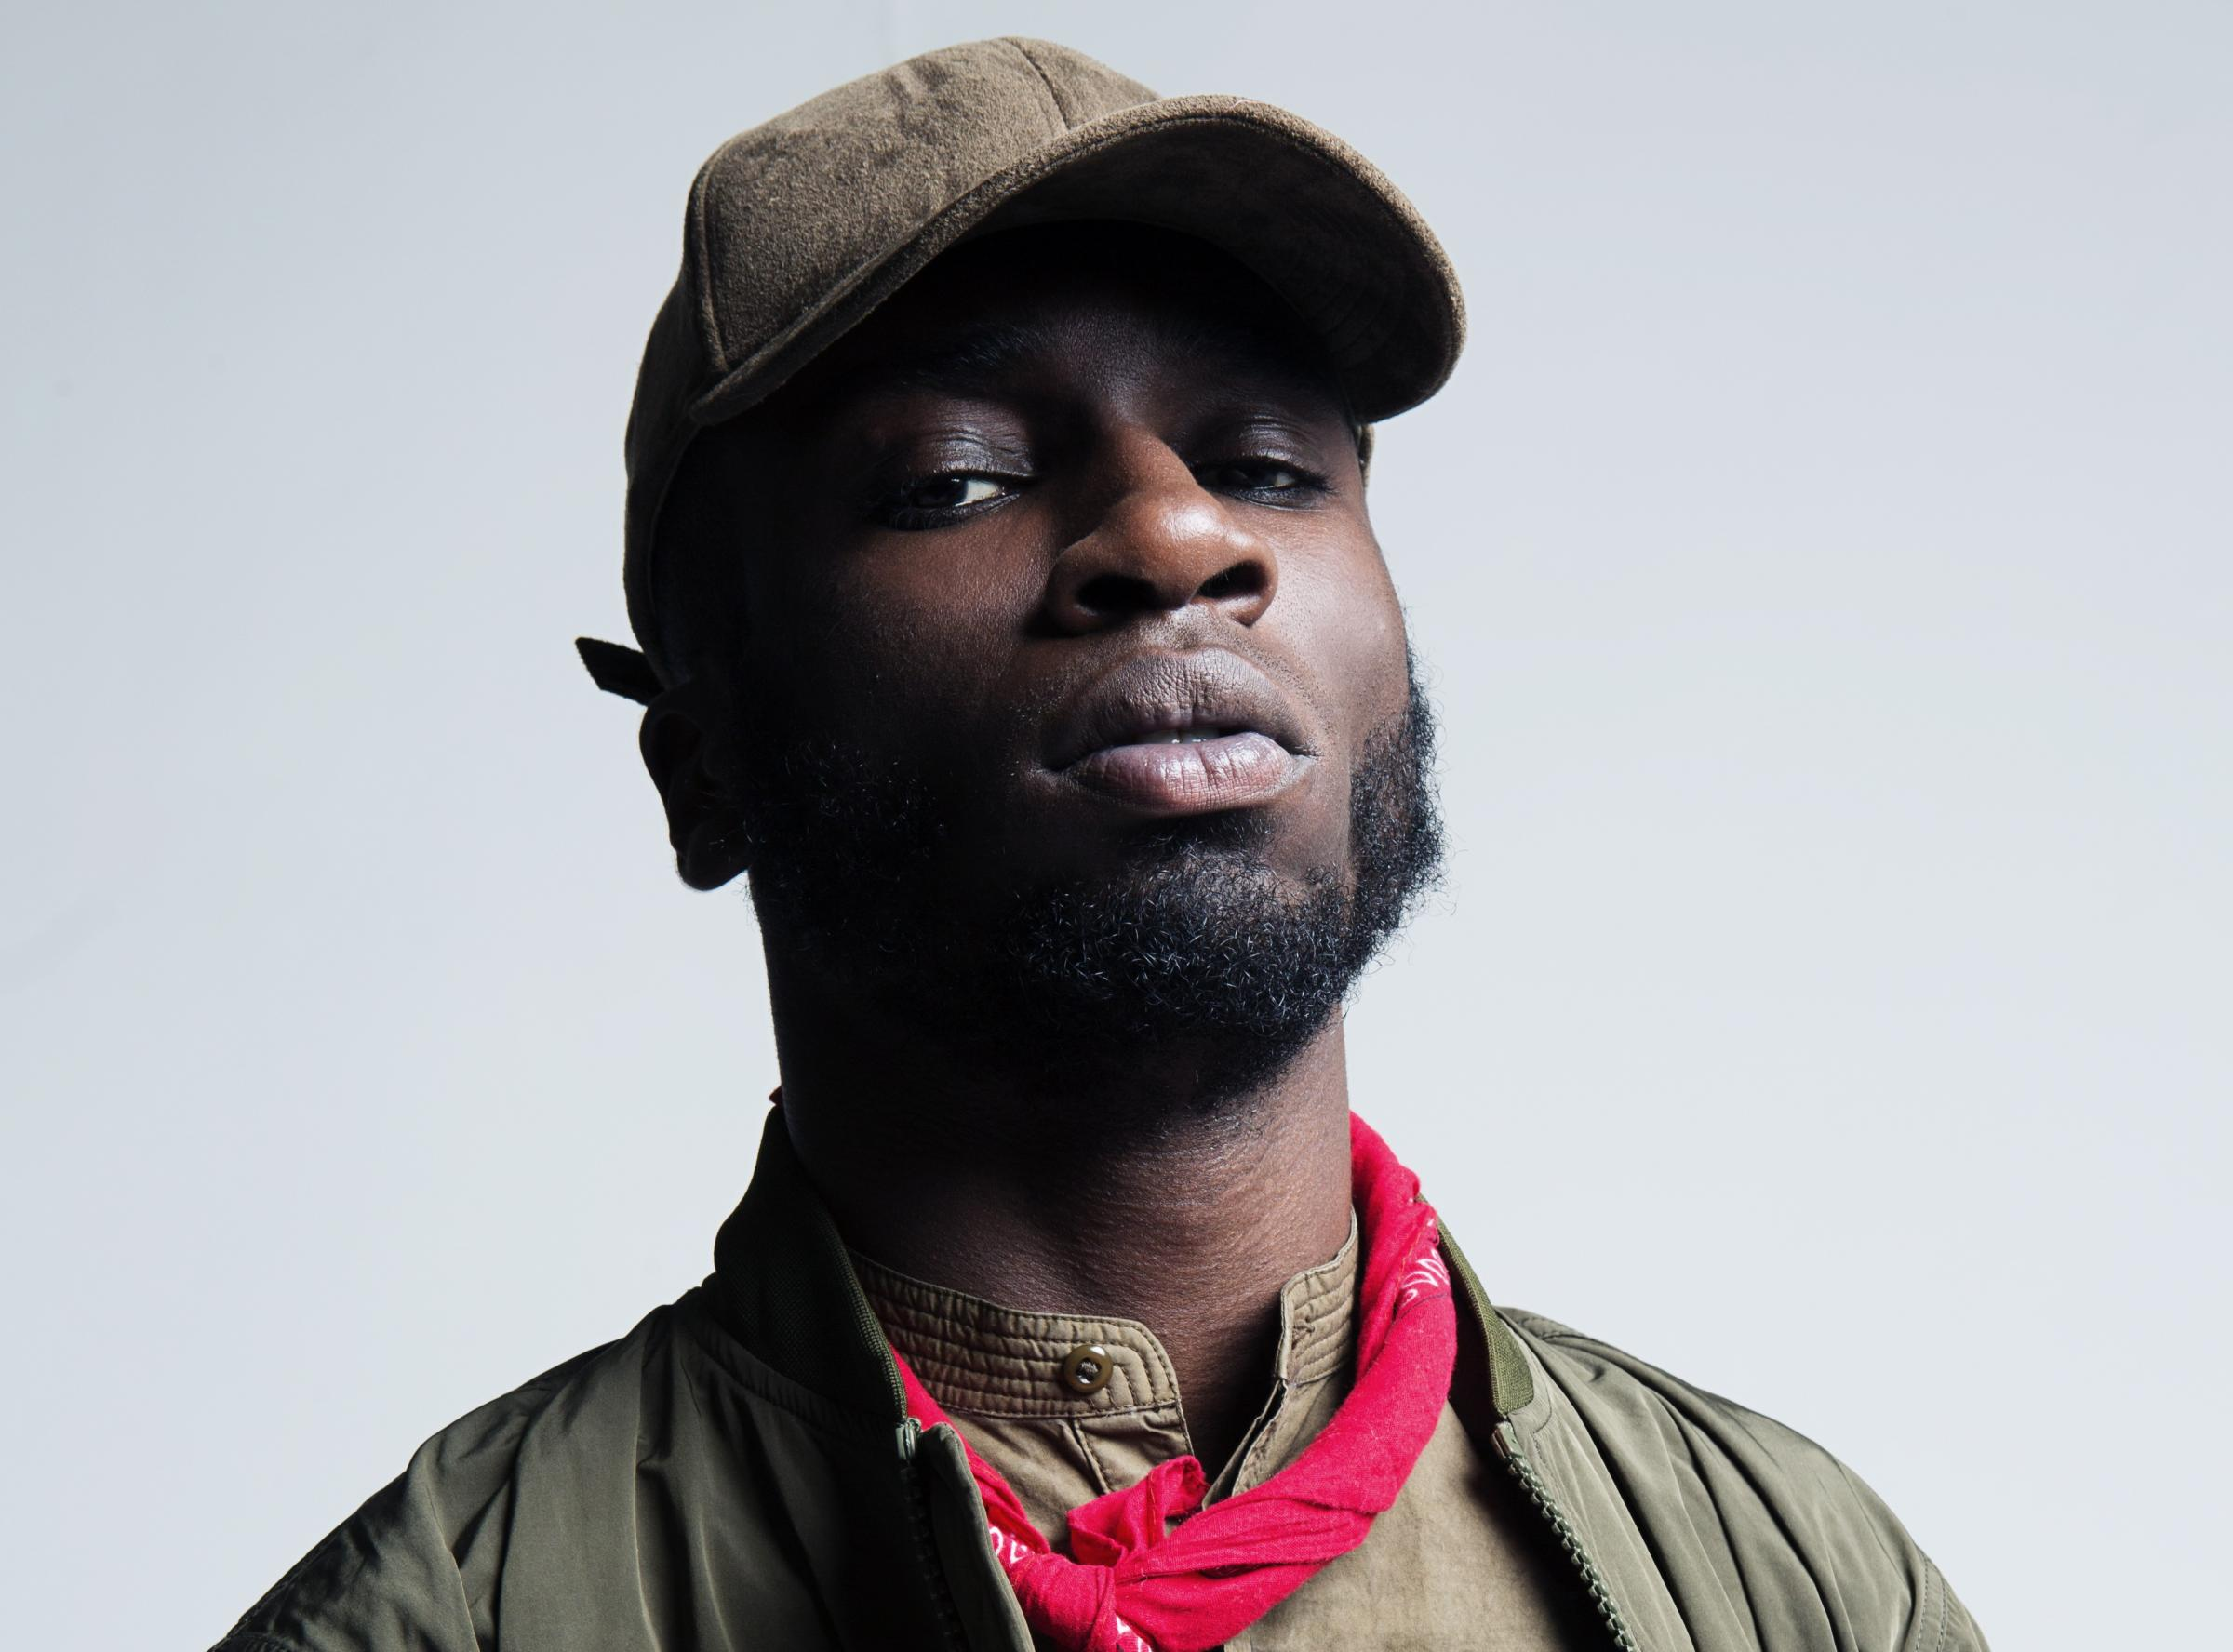 Upcoming spoken word artist Kojey Radical